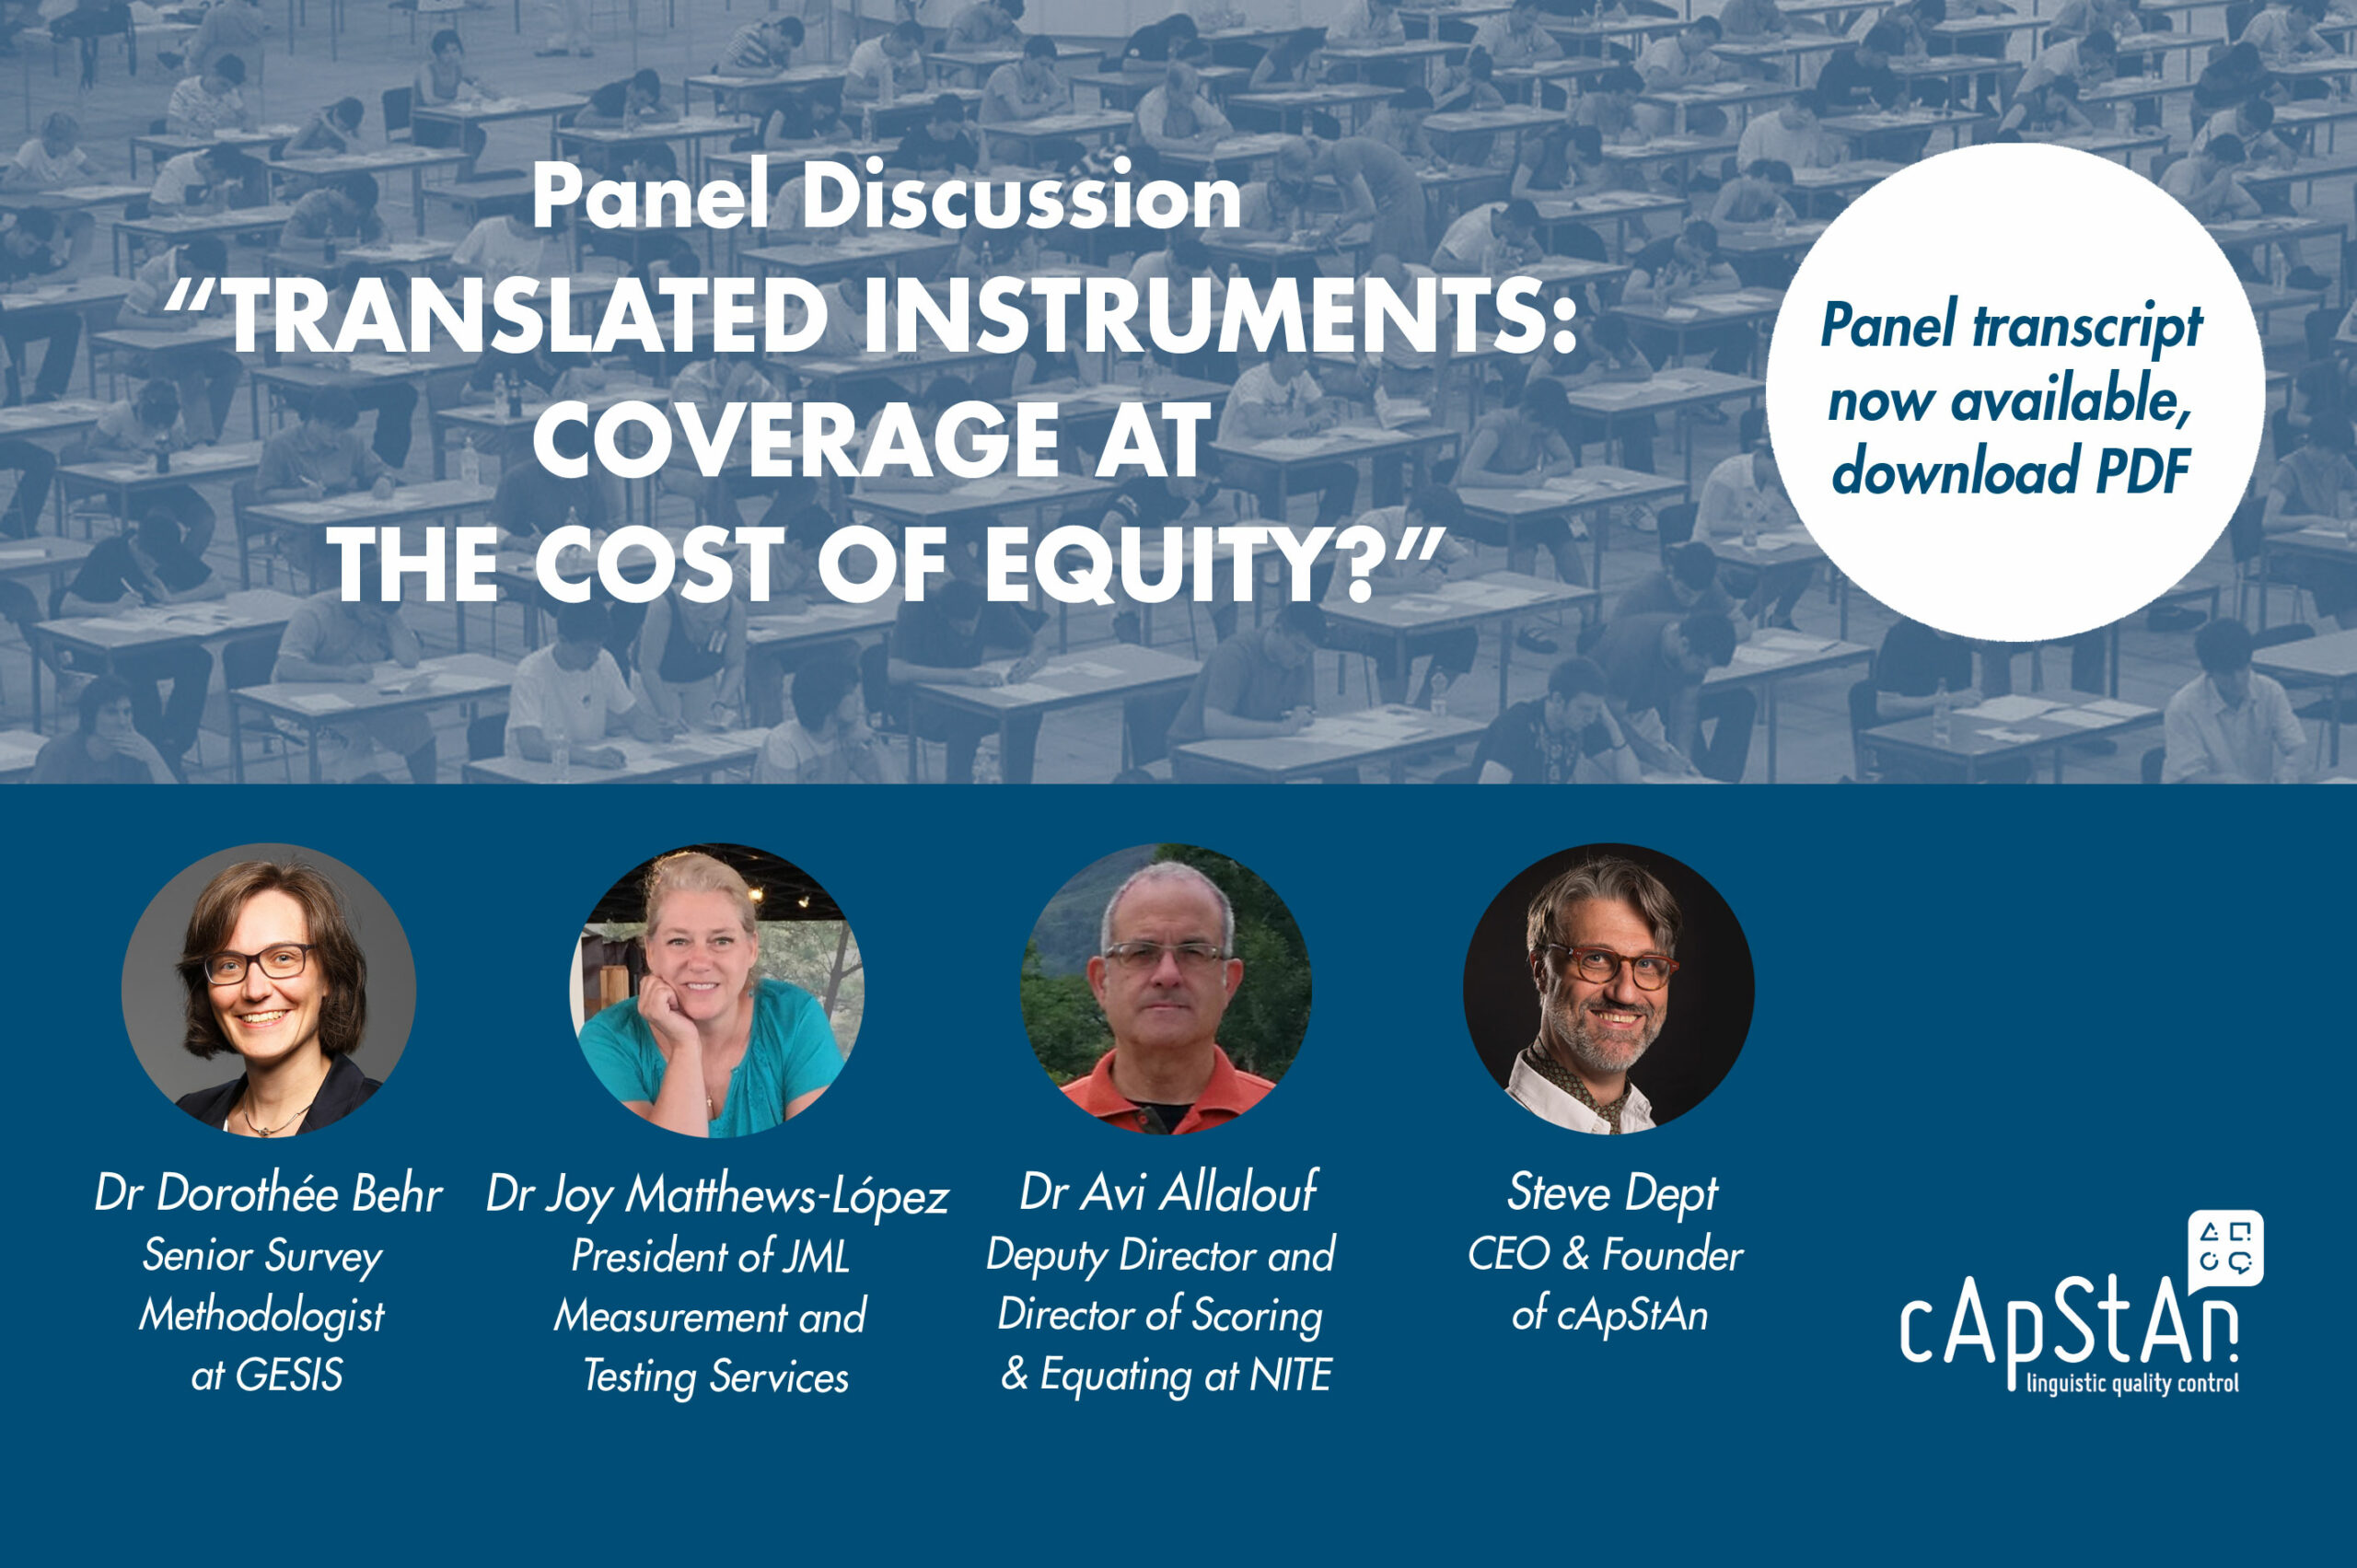 Detailed Transcript: Translated Instruments: Coverage at the cost of Equity?